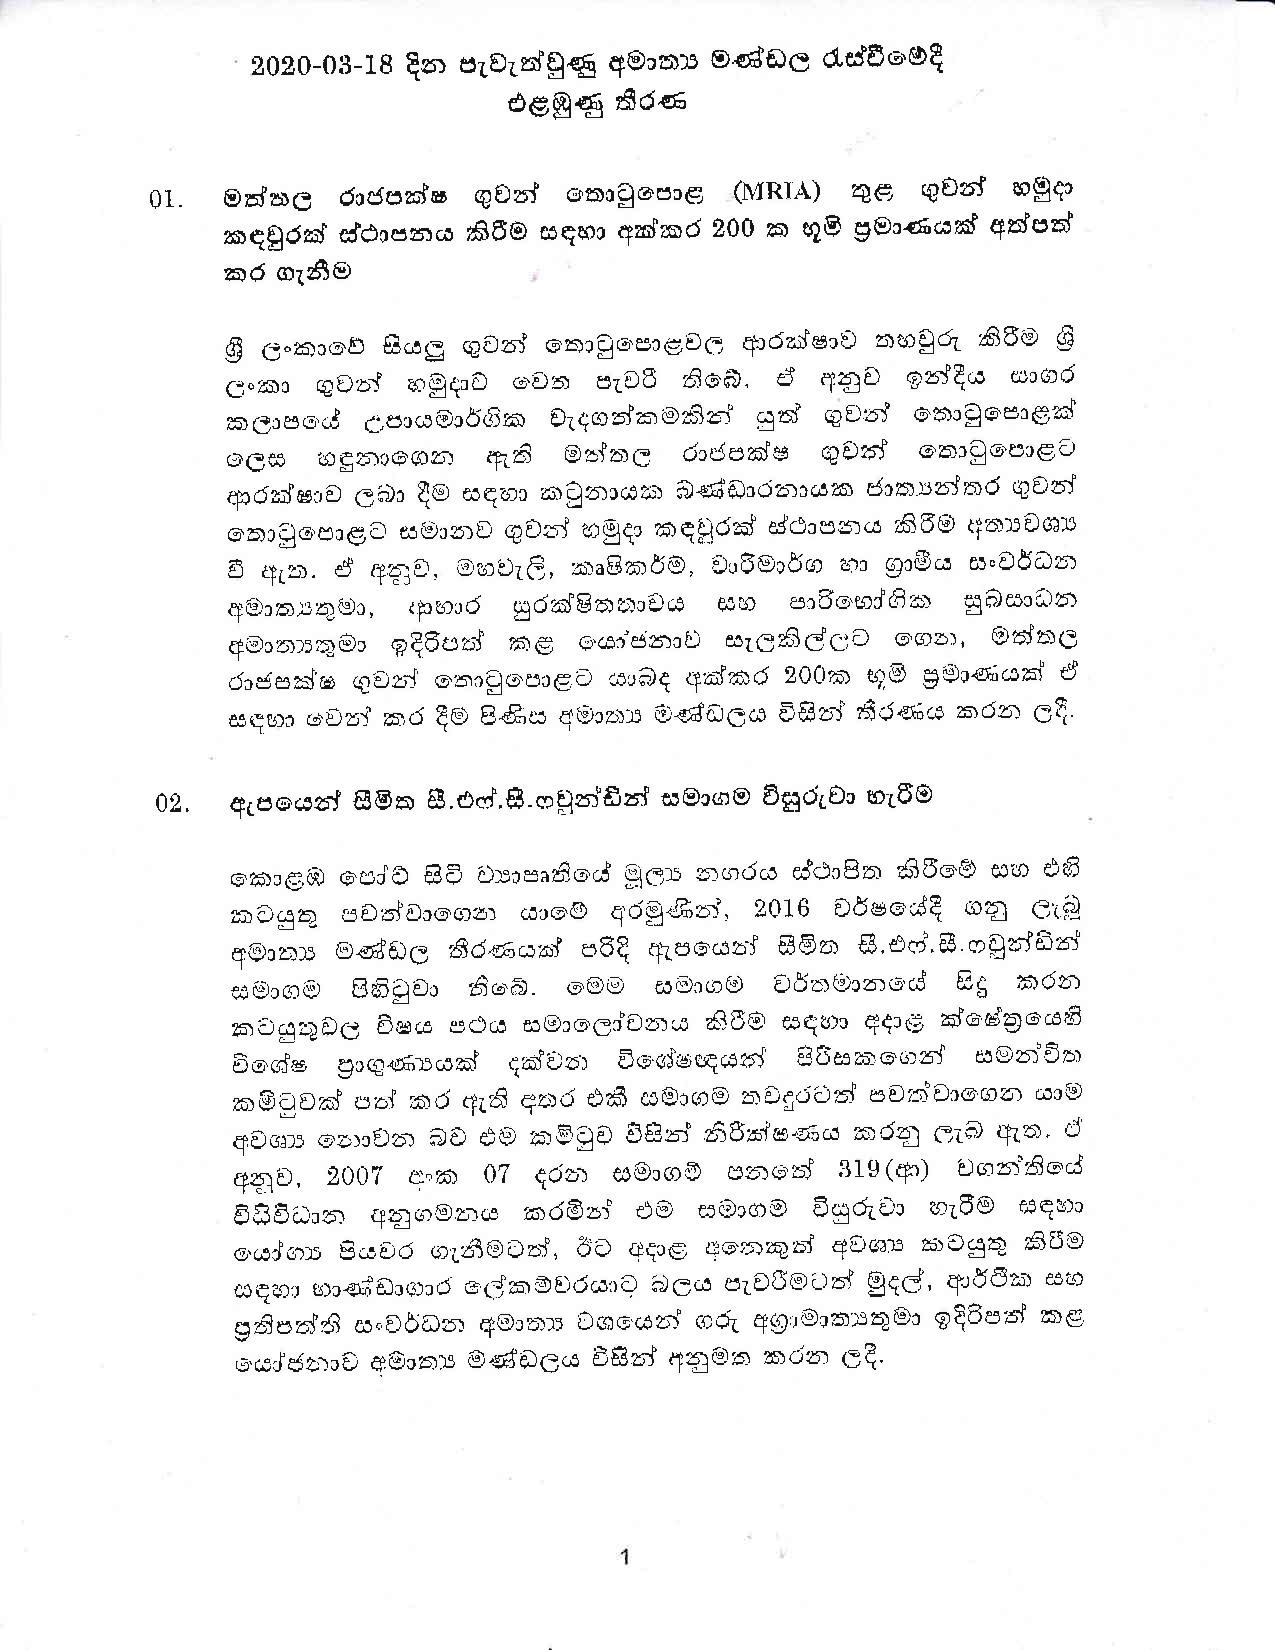 Cabinet Decision on sinhala 18.03.2020 page 001